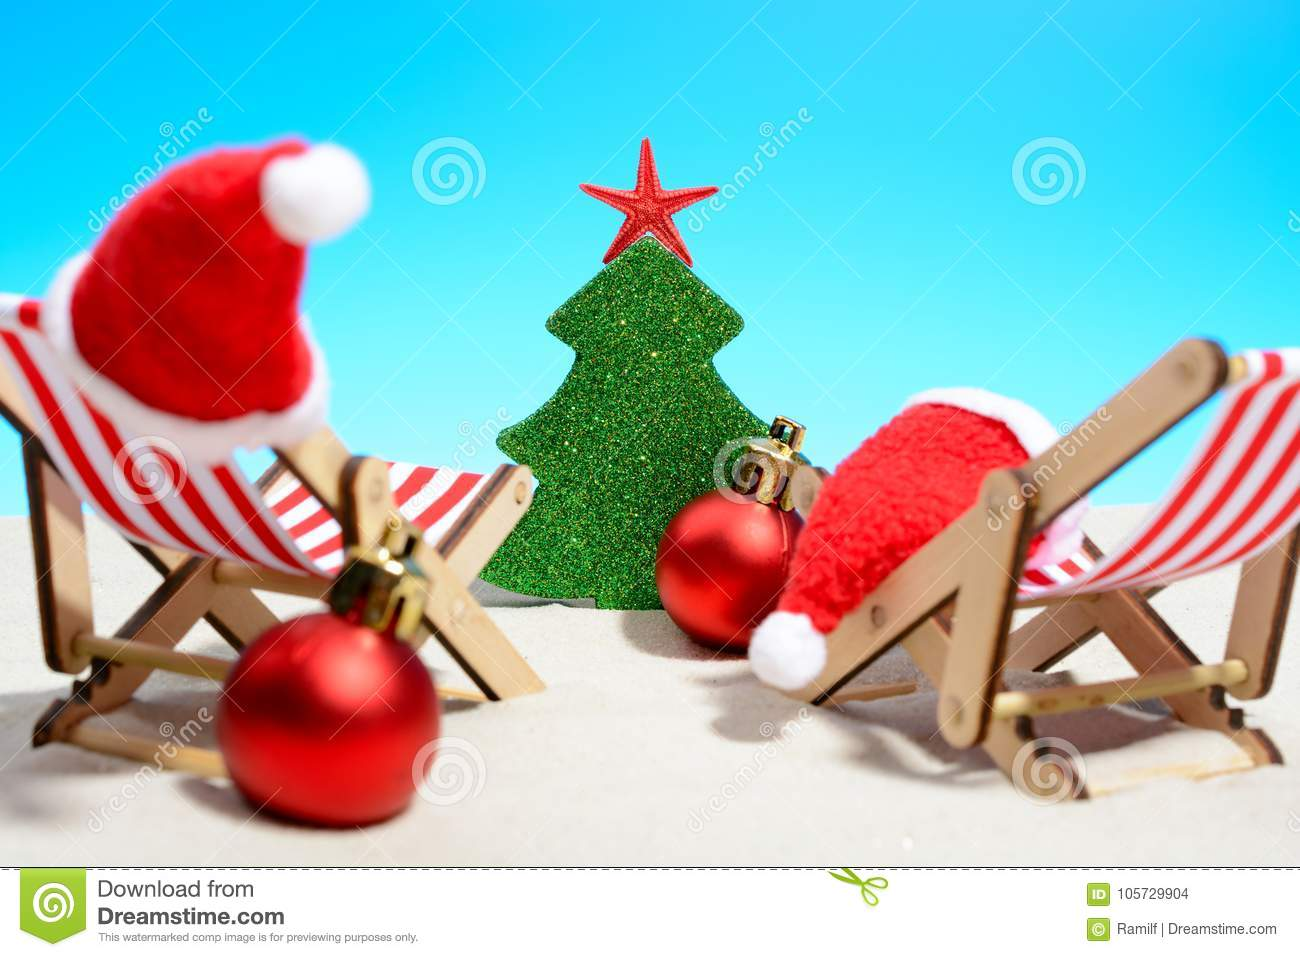 Seasonal Christmas greetings from a tropical beach with two deck chairs, Santa hats, baubles in red and white in front of a Xmas t